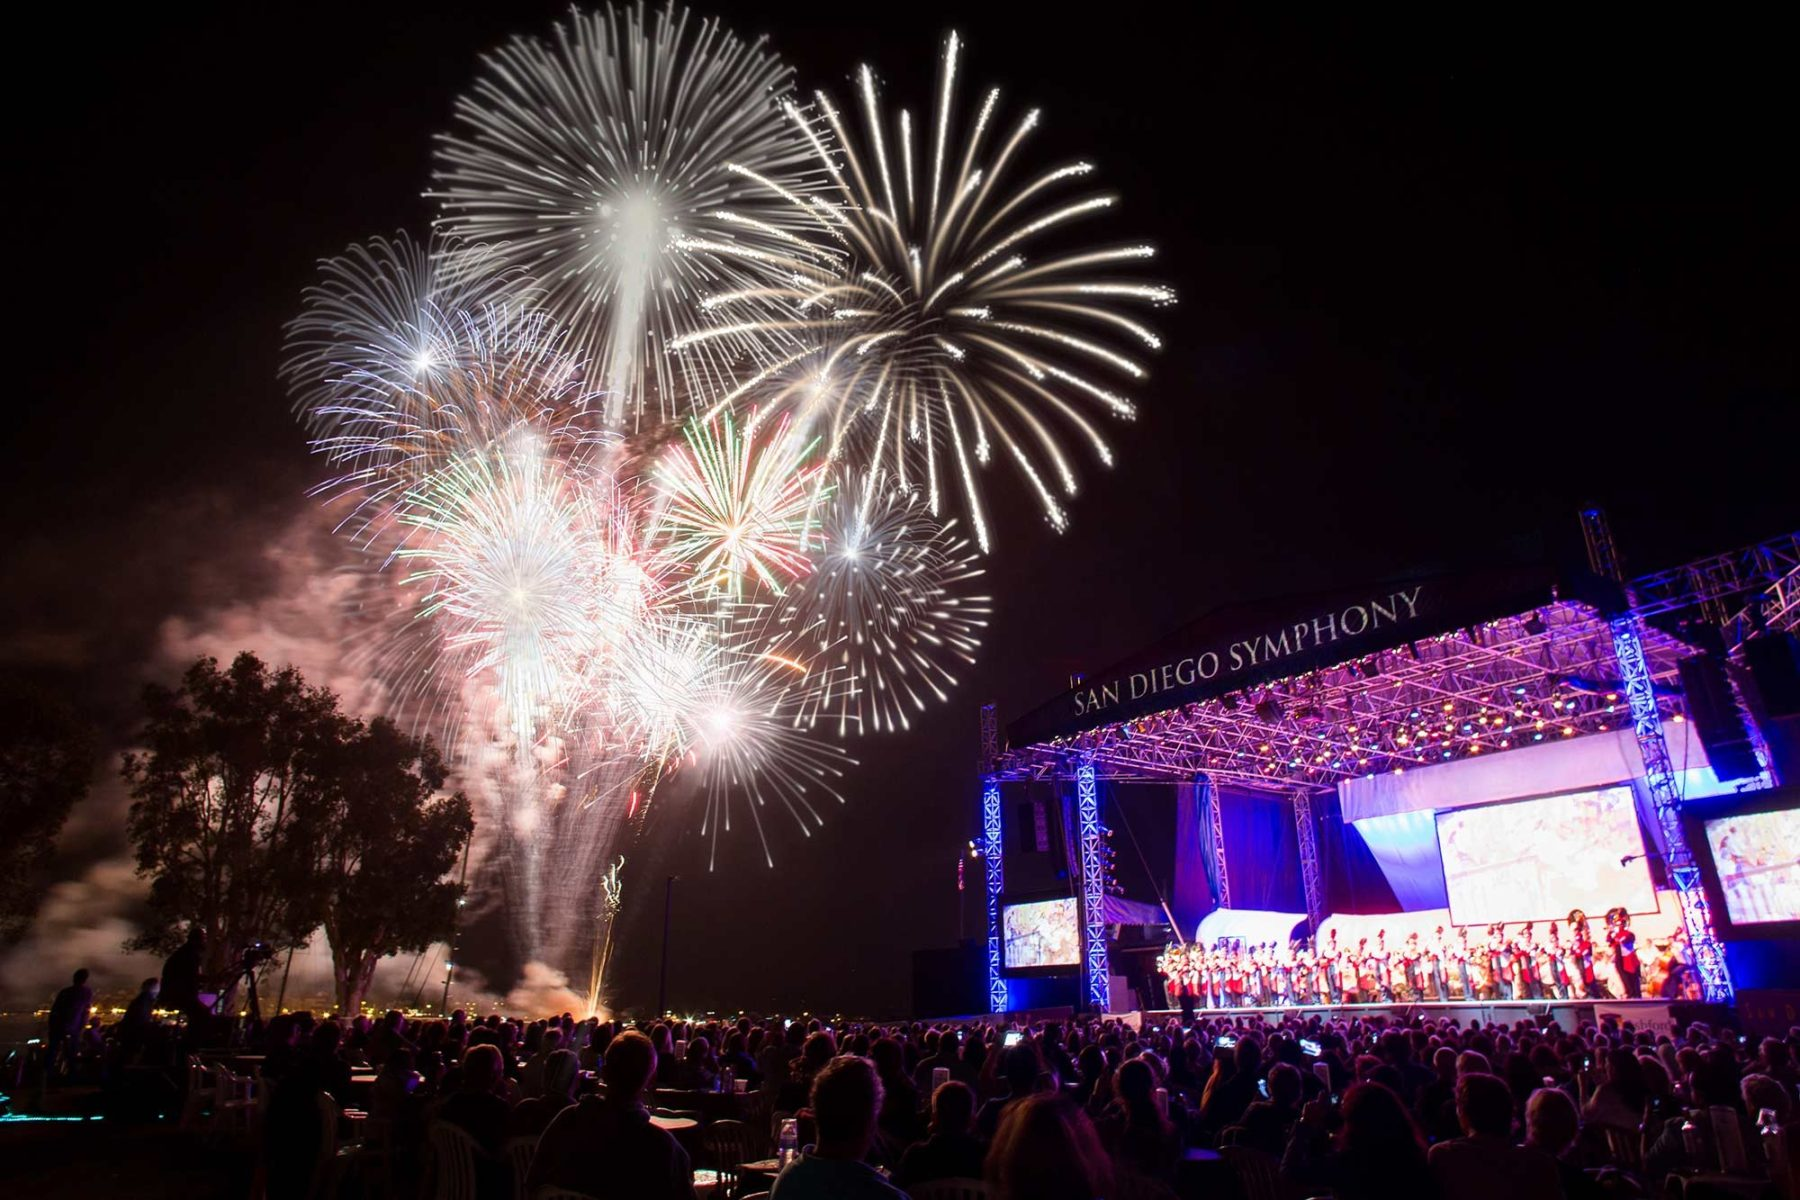 SD Symphony at the Bayside Summer Nights